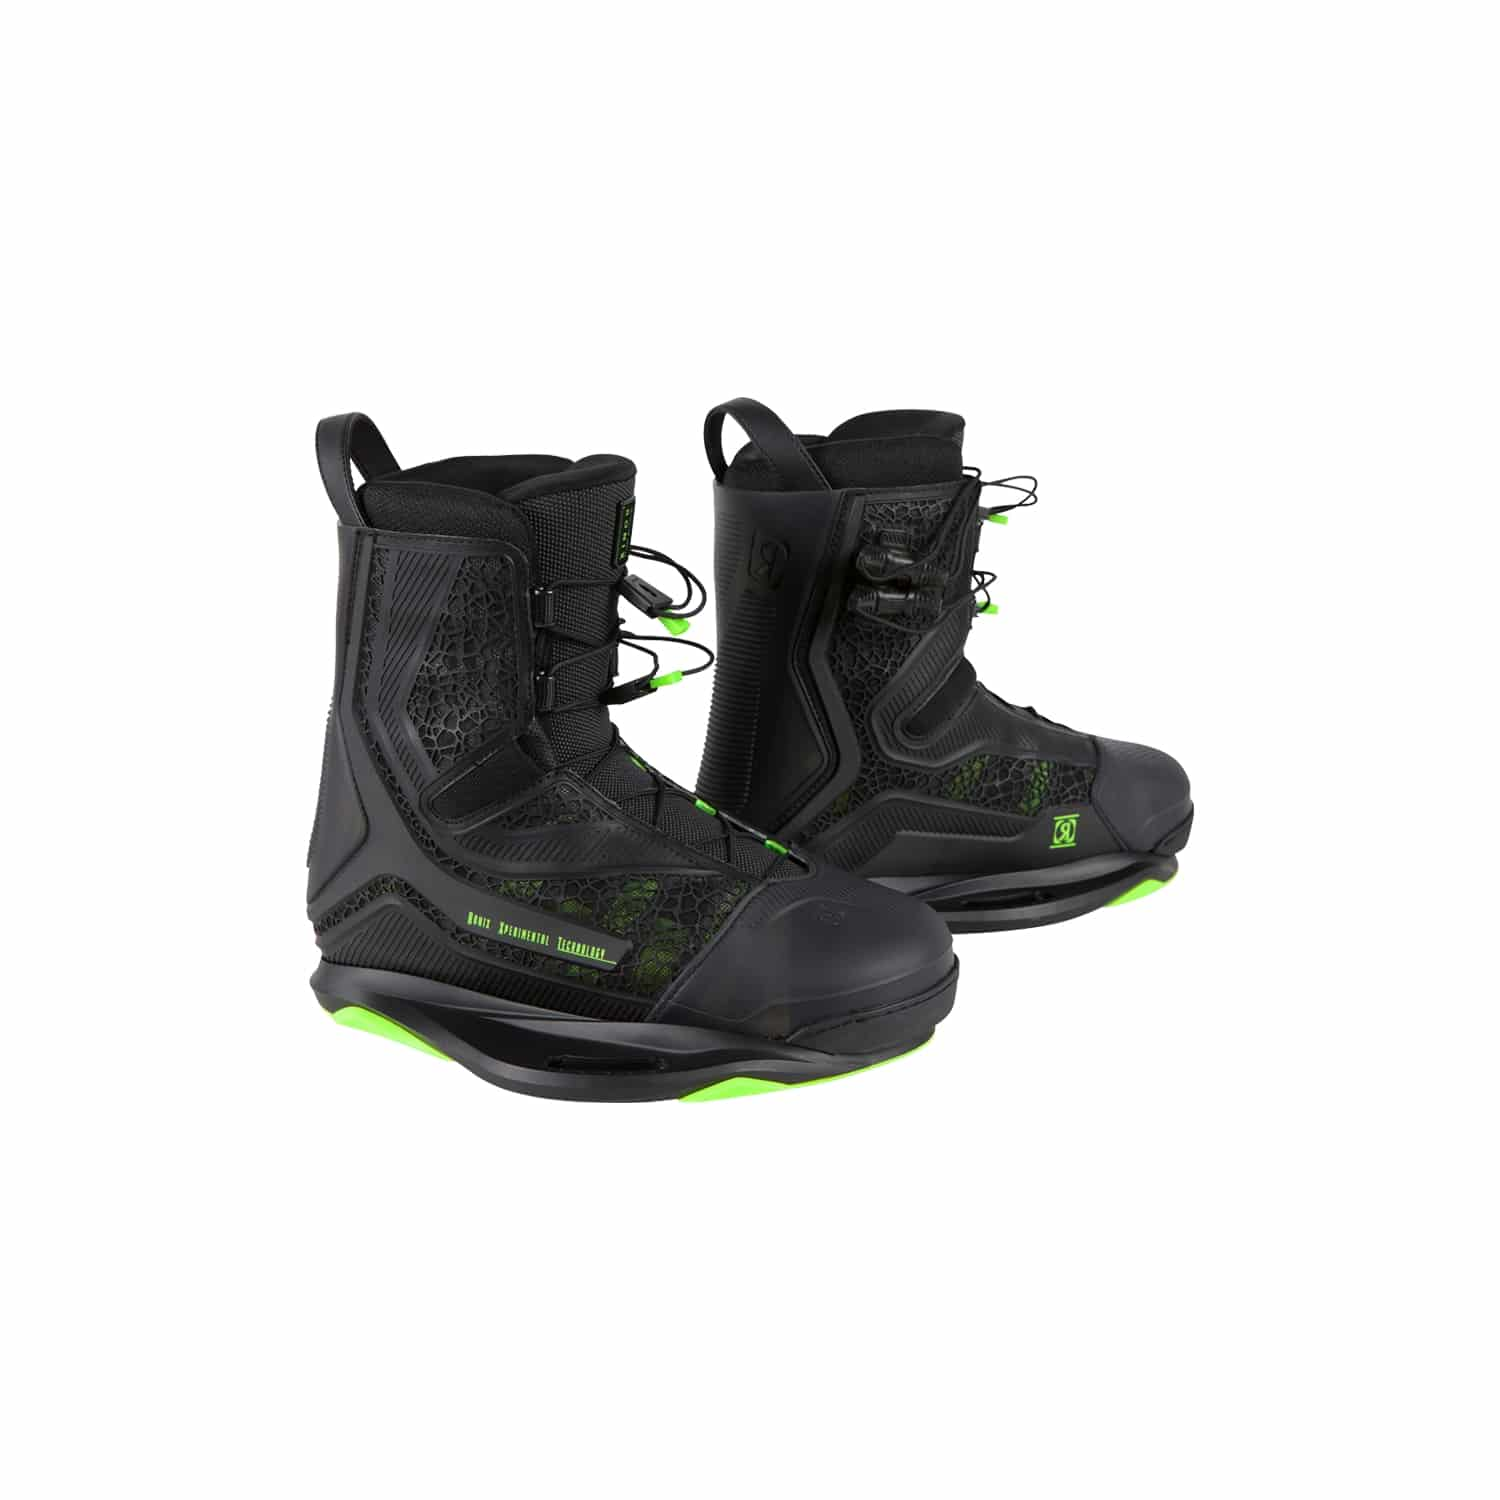 Ronix RXT Intuition+ 2021